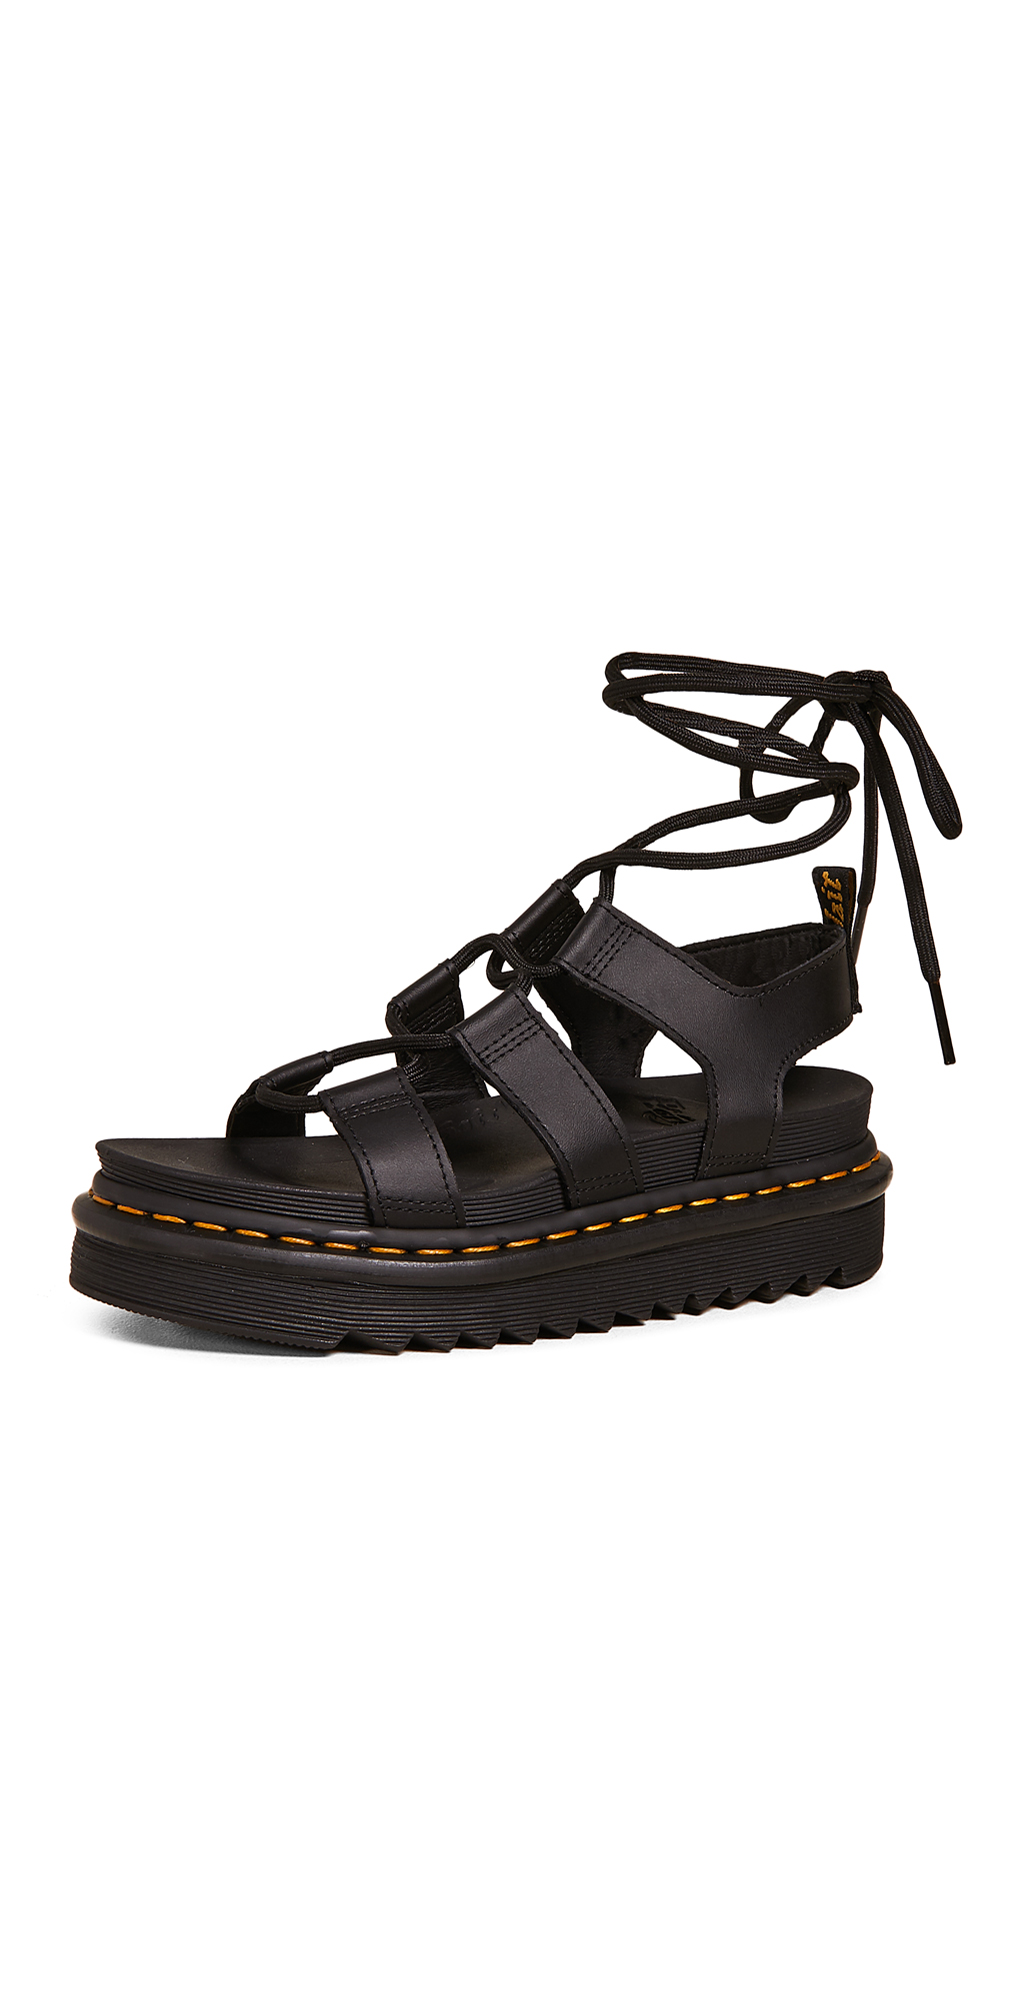 Dr. Martens Nartilla Sandals